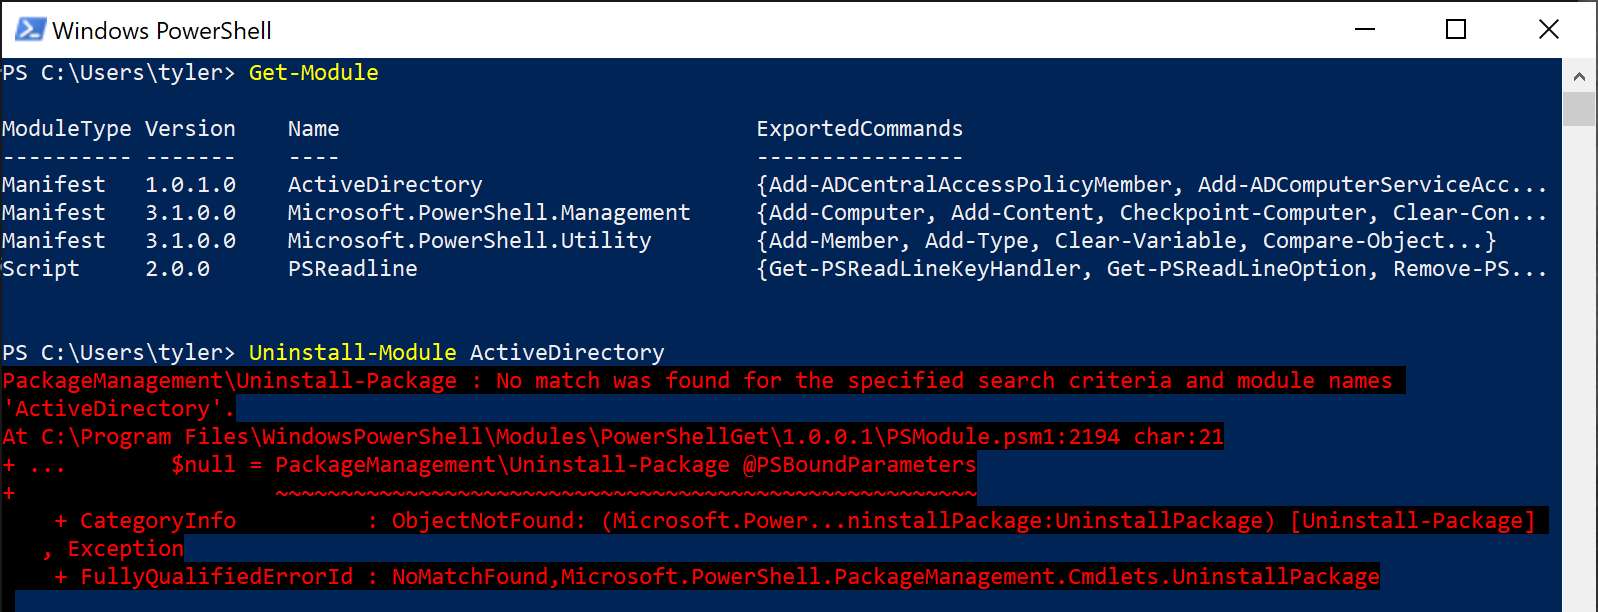 Uninstalling modules installed from a PSRepository with Uninstall-Module